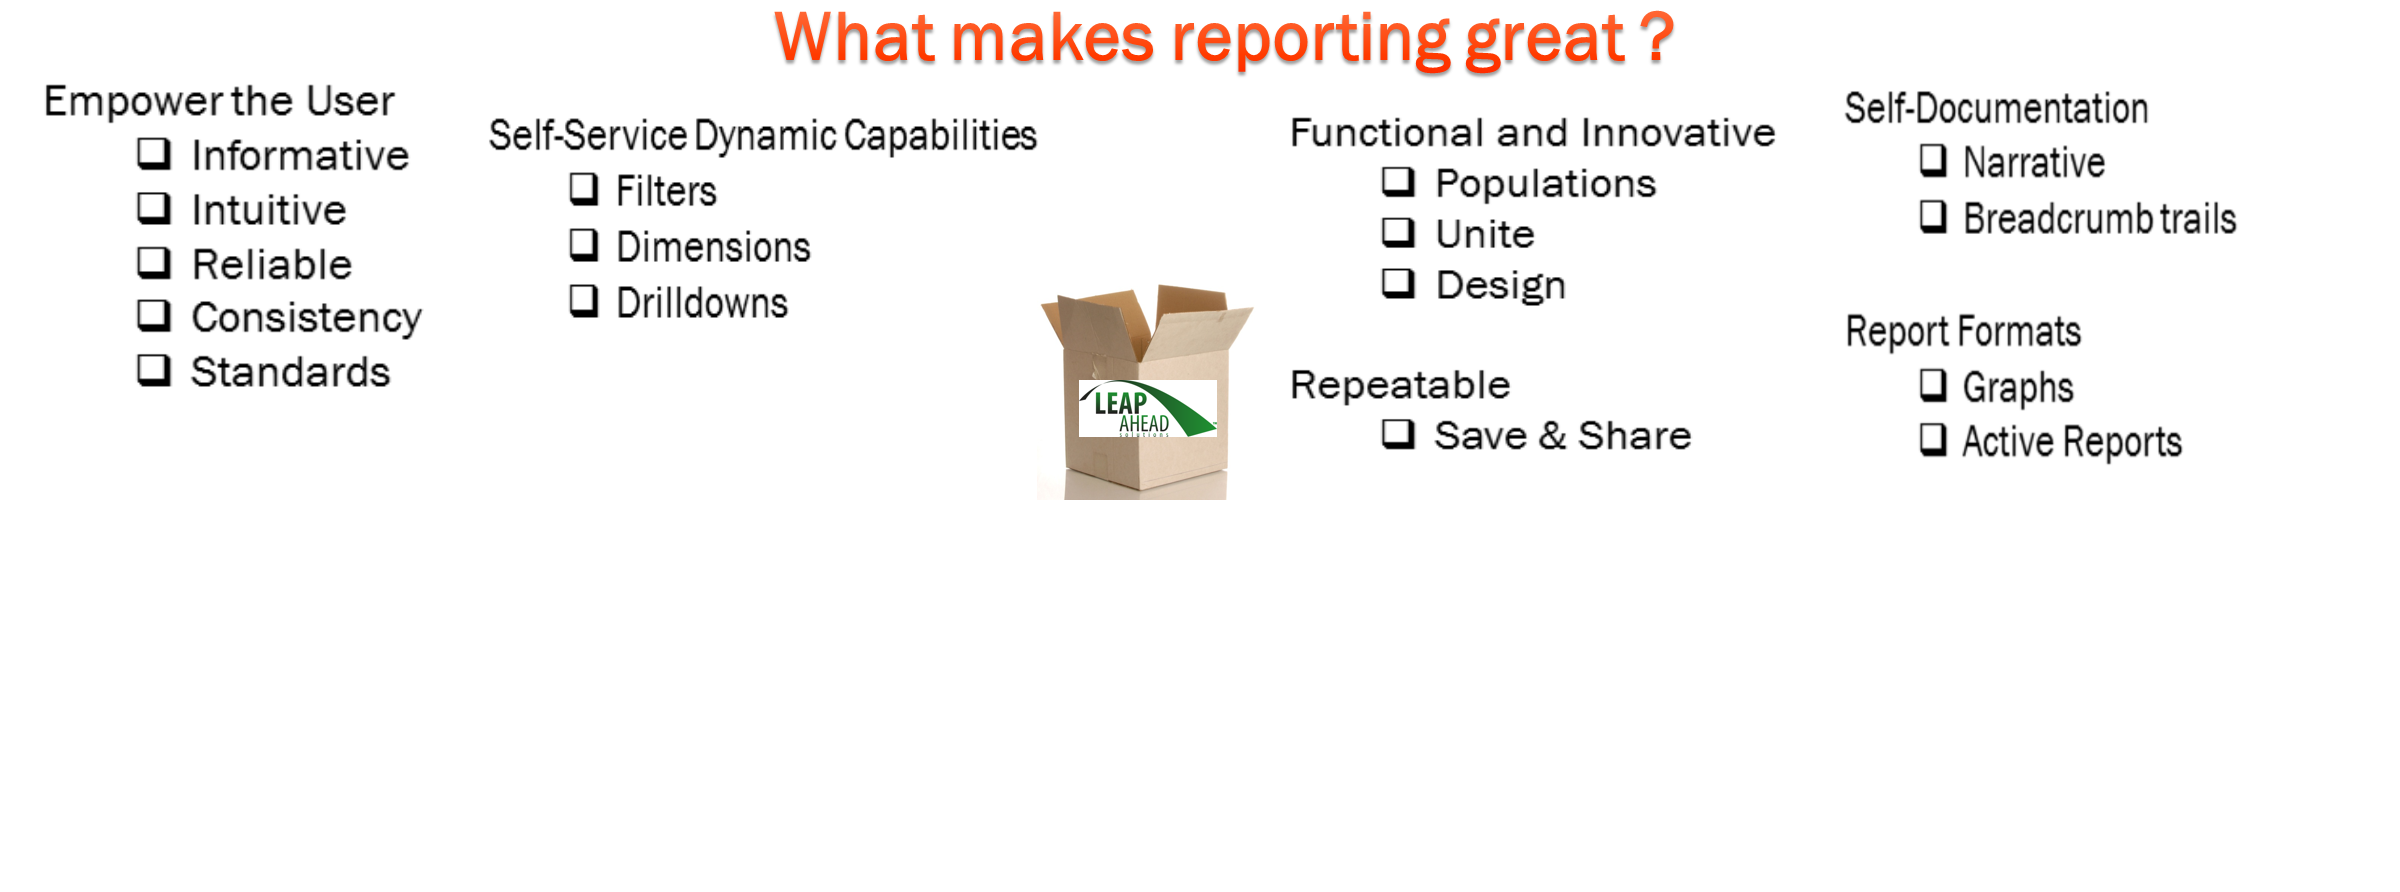 Templates showcase best reporting practices